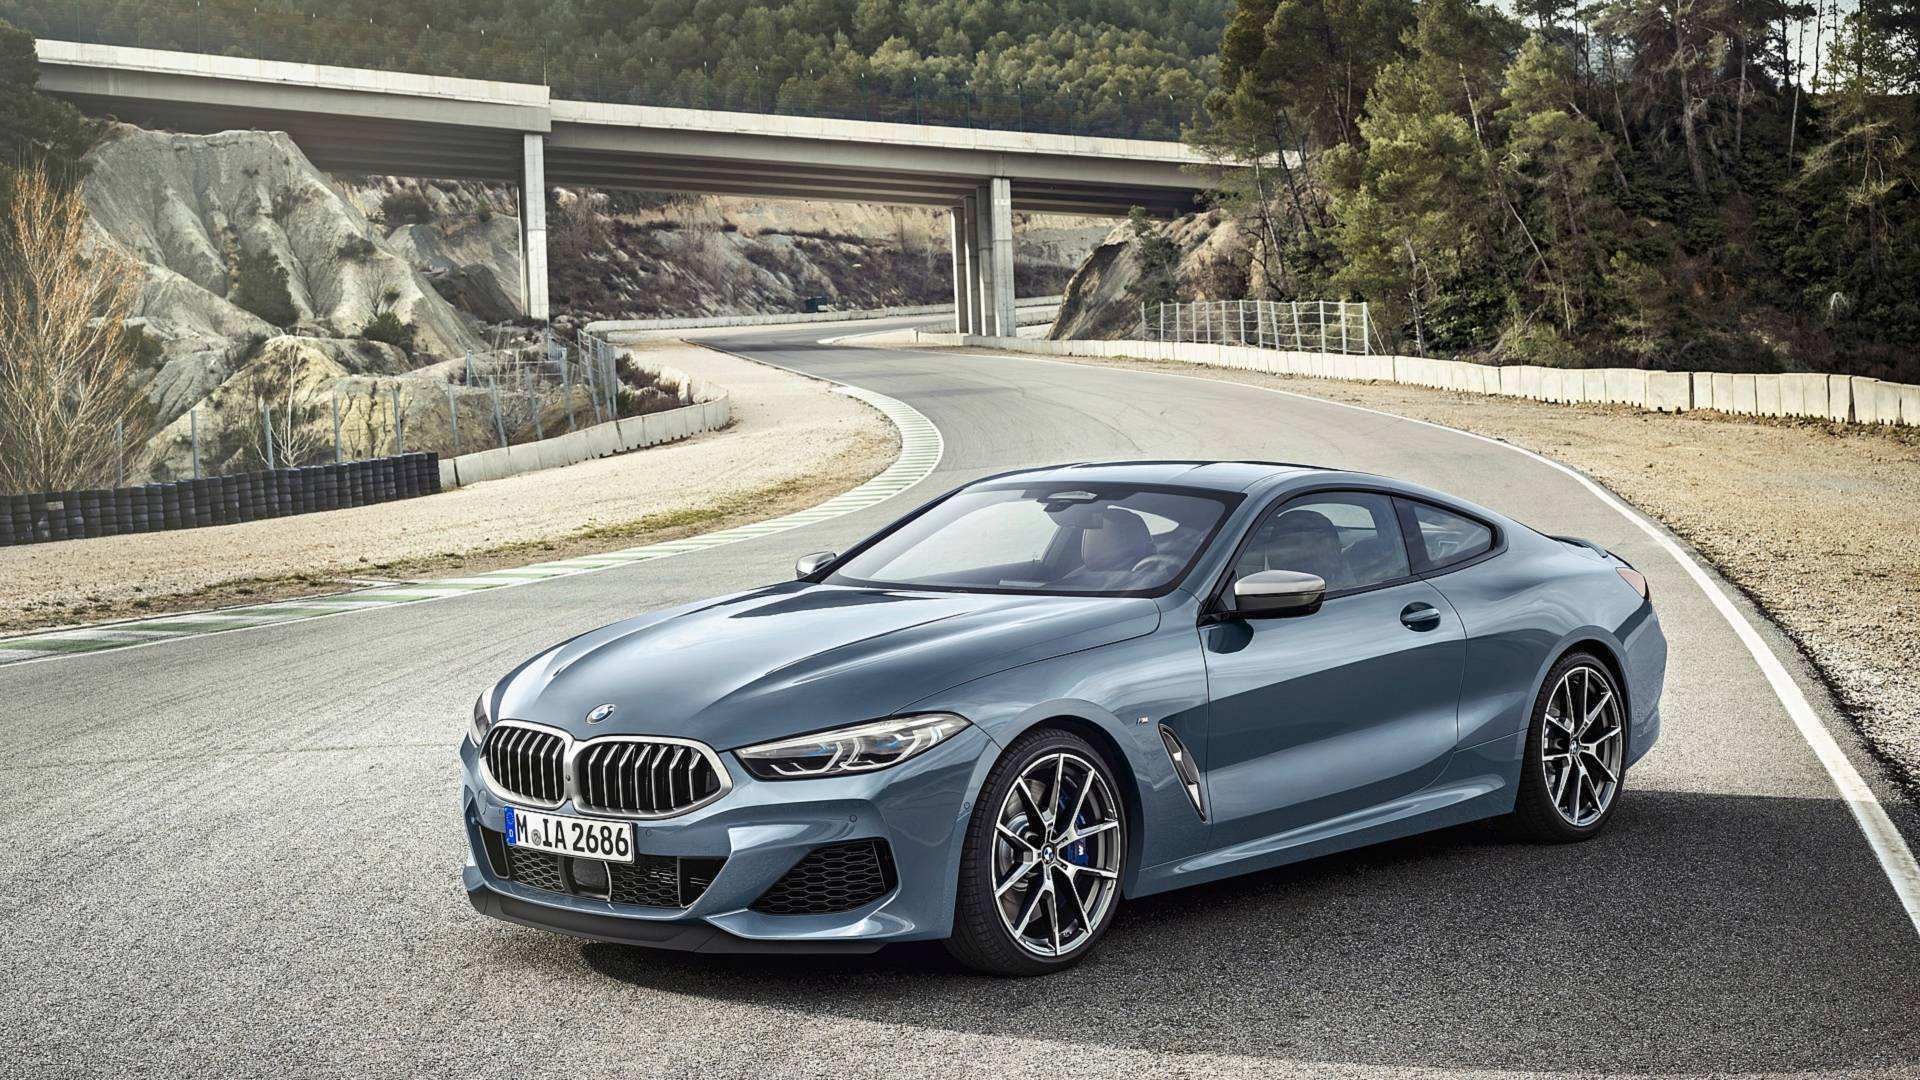 38 New 2019 8 Series Bmw Redesign and Concept with 2019 8 Series Bmw